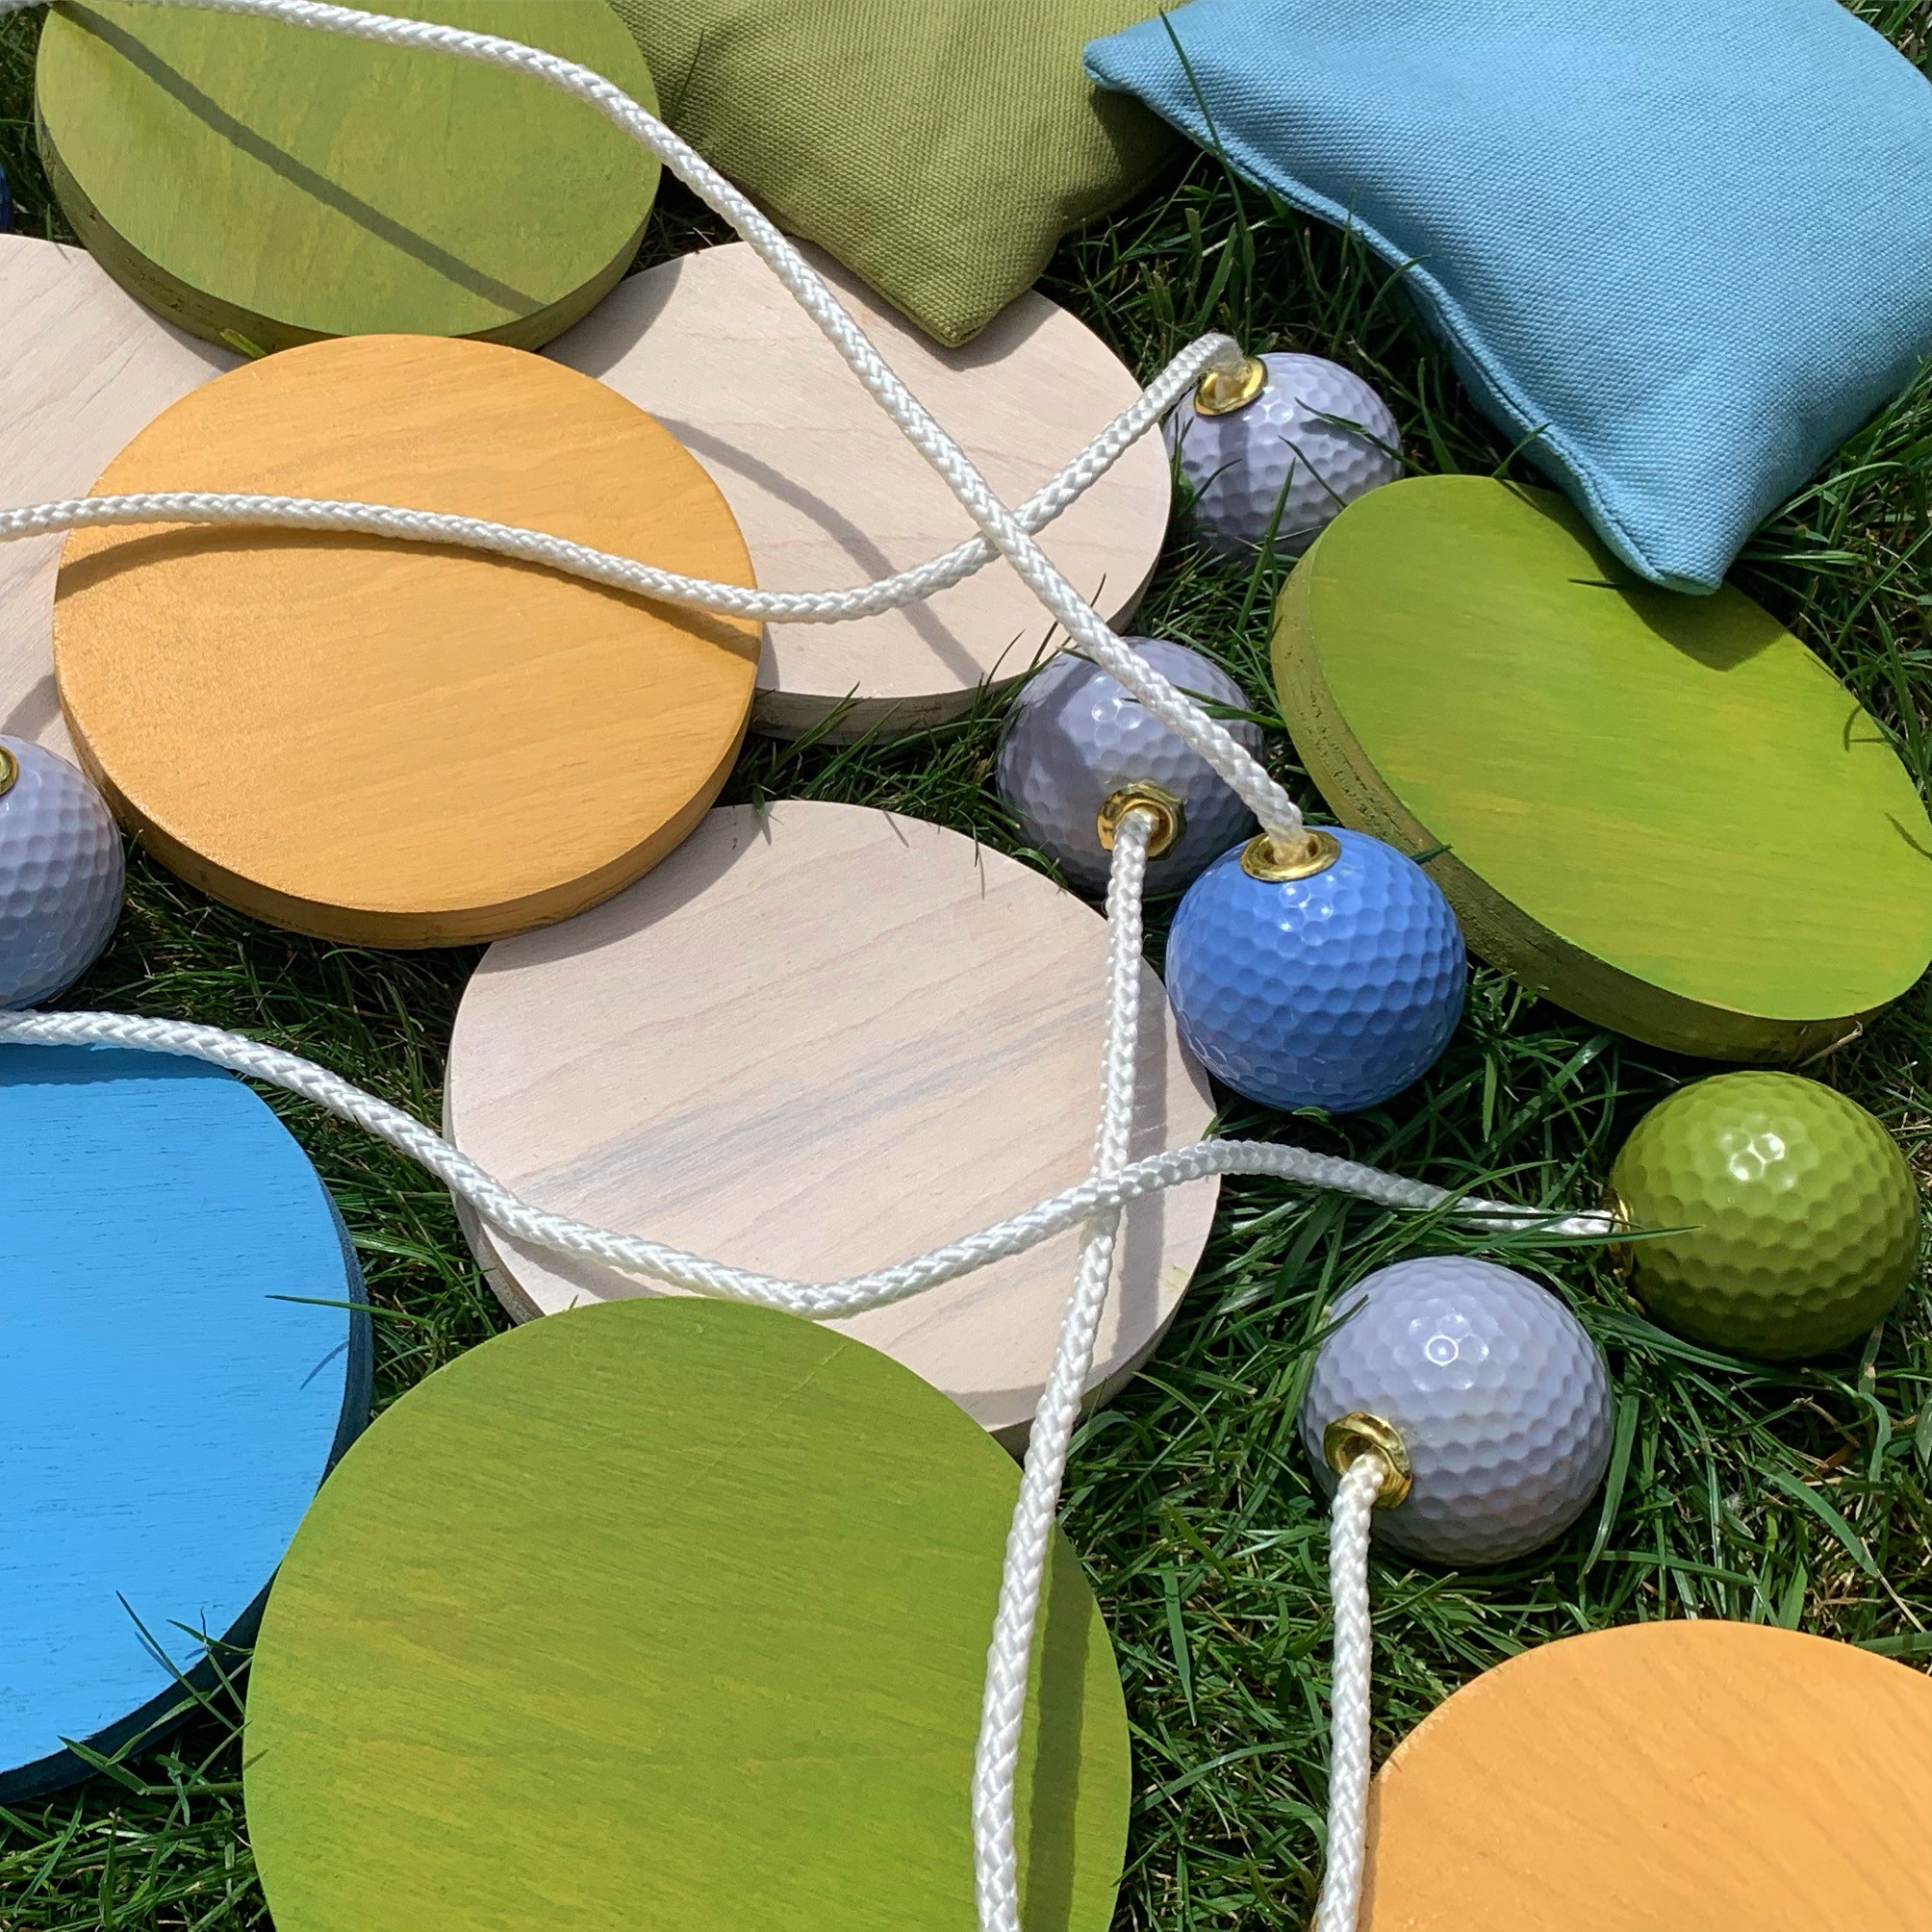 Bags +Bolas +Discs - Custom colored accessories to match your eventAll game accessories are hand-made and custom colored. They'll be sure to impress at any event.